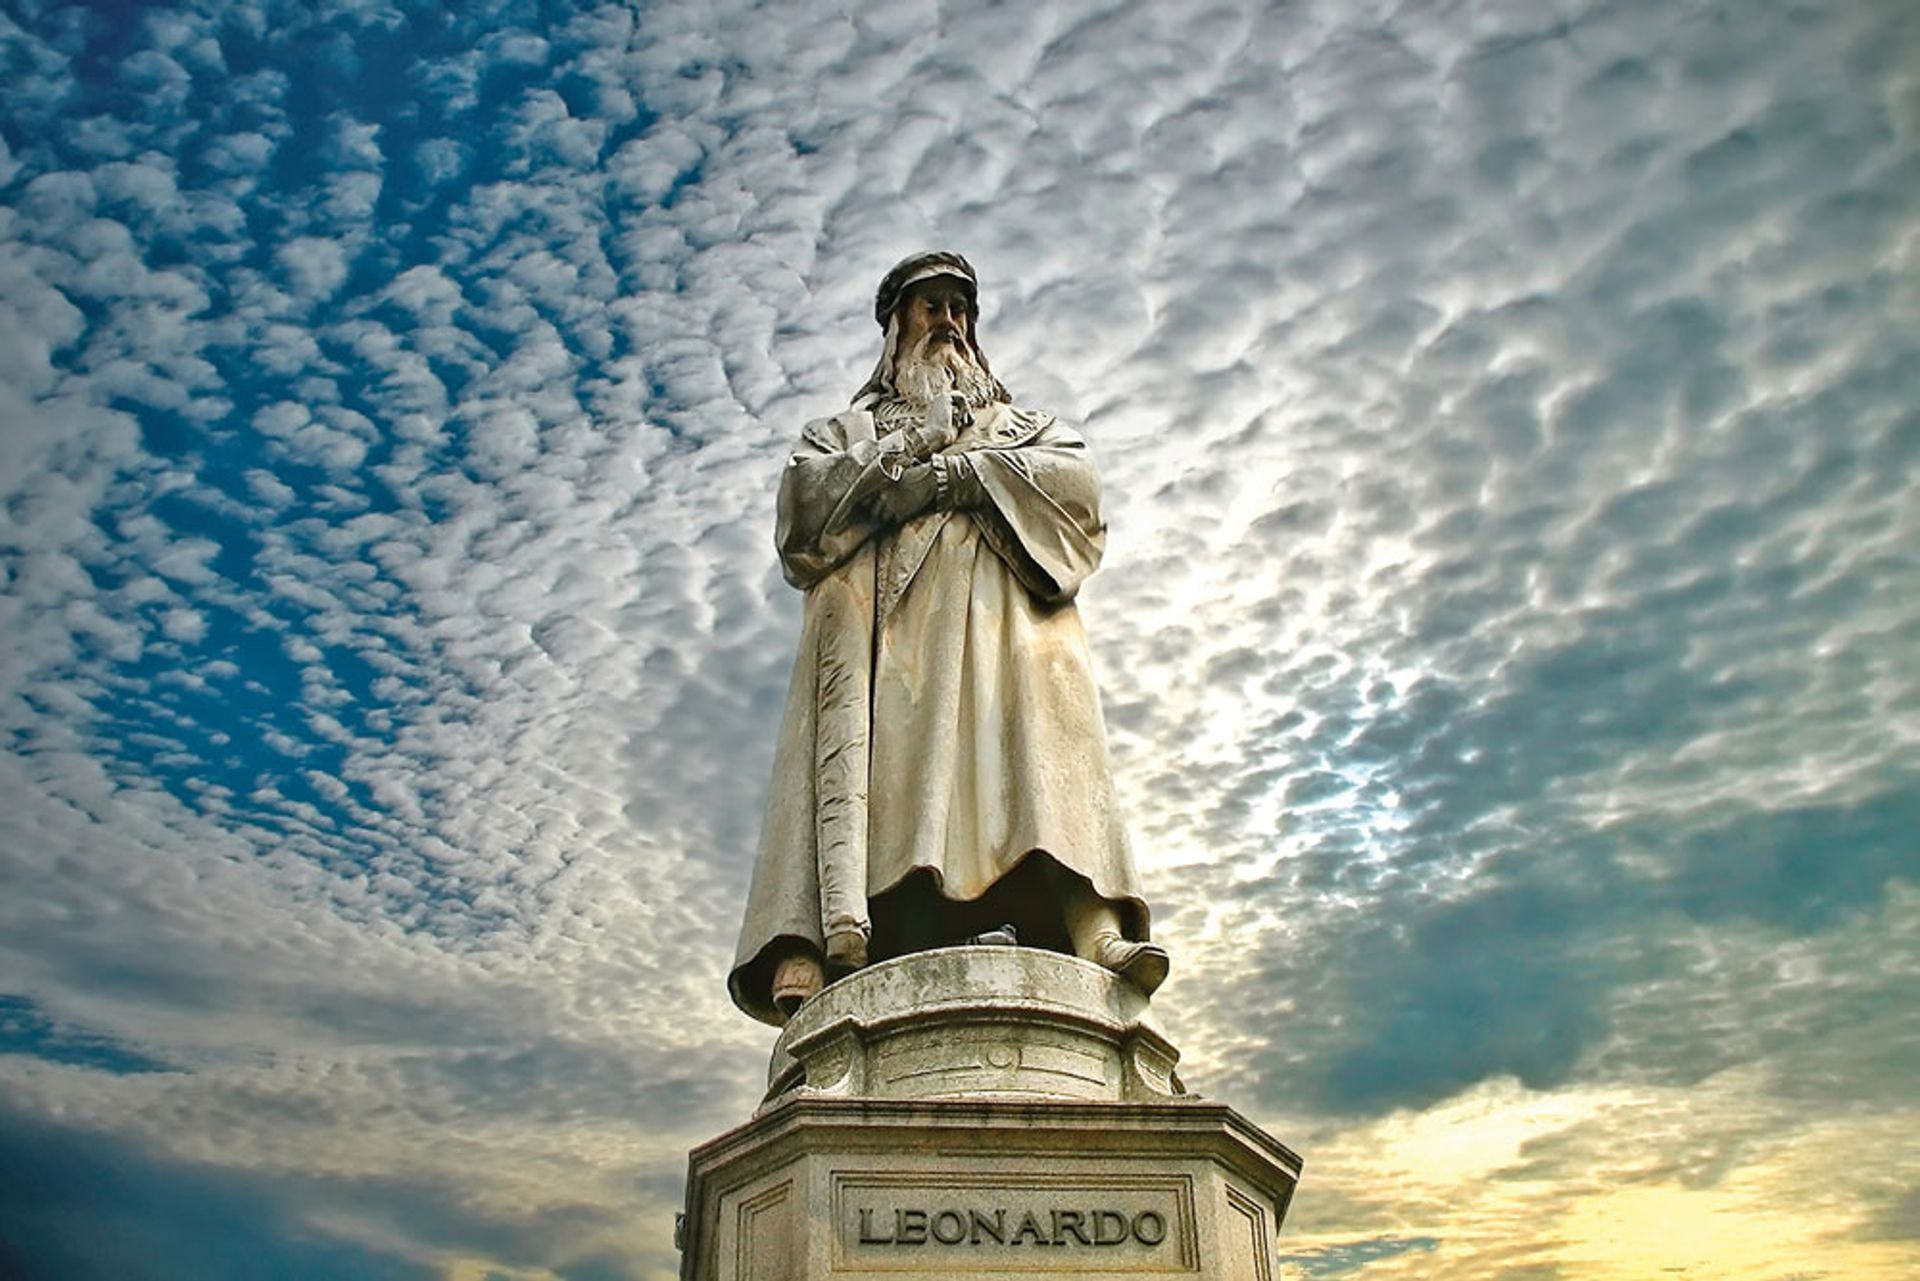 Museums across Europe are planning shows for the 500th anniversary of Leonardo da Vinci's death next year WDG Photo